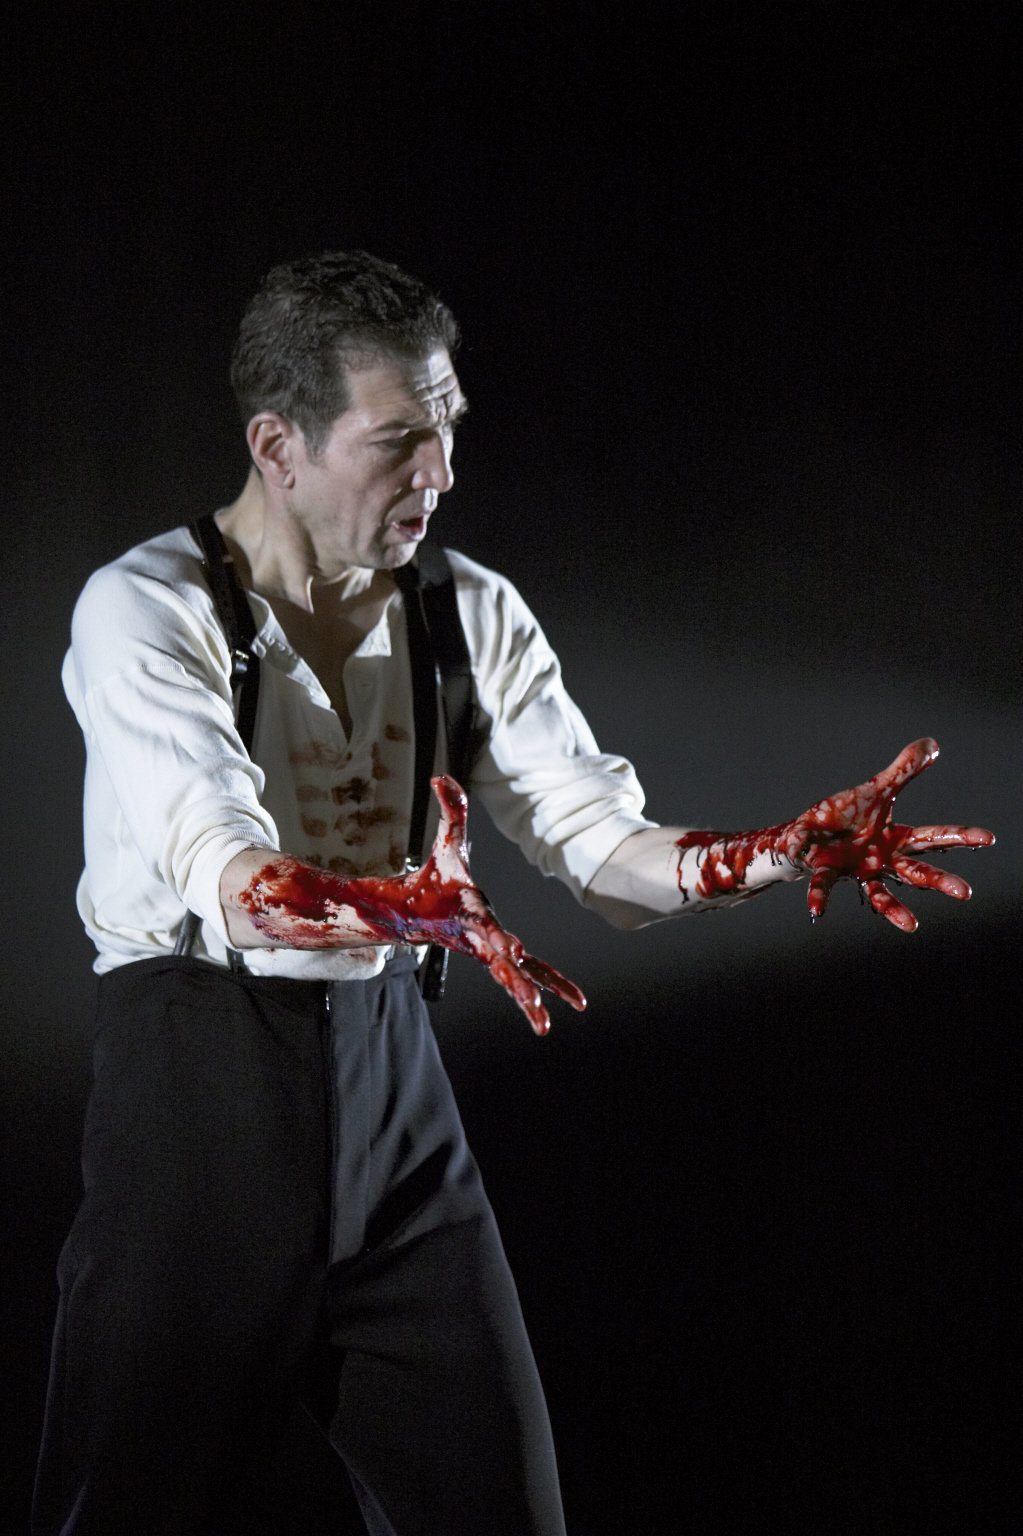 Macbeth with hands covered in blood.